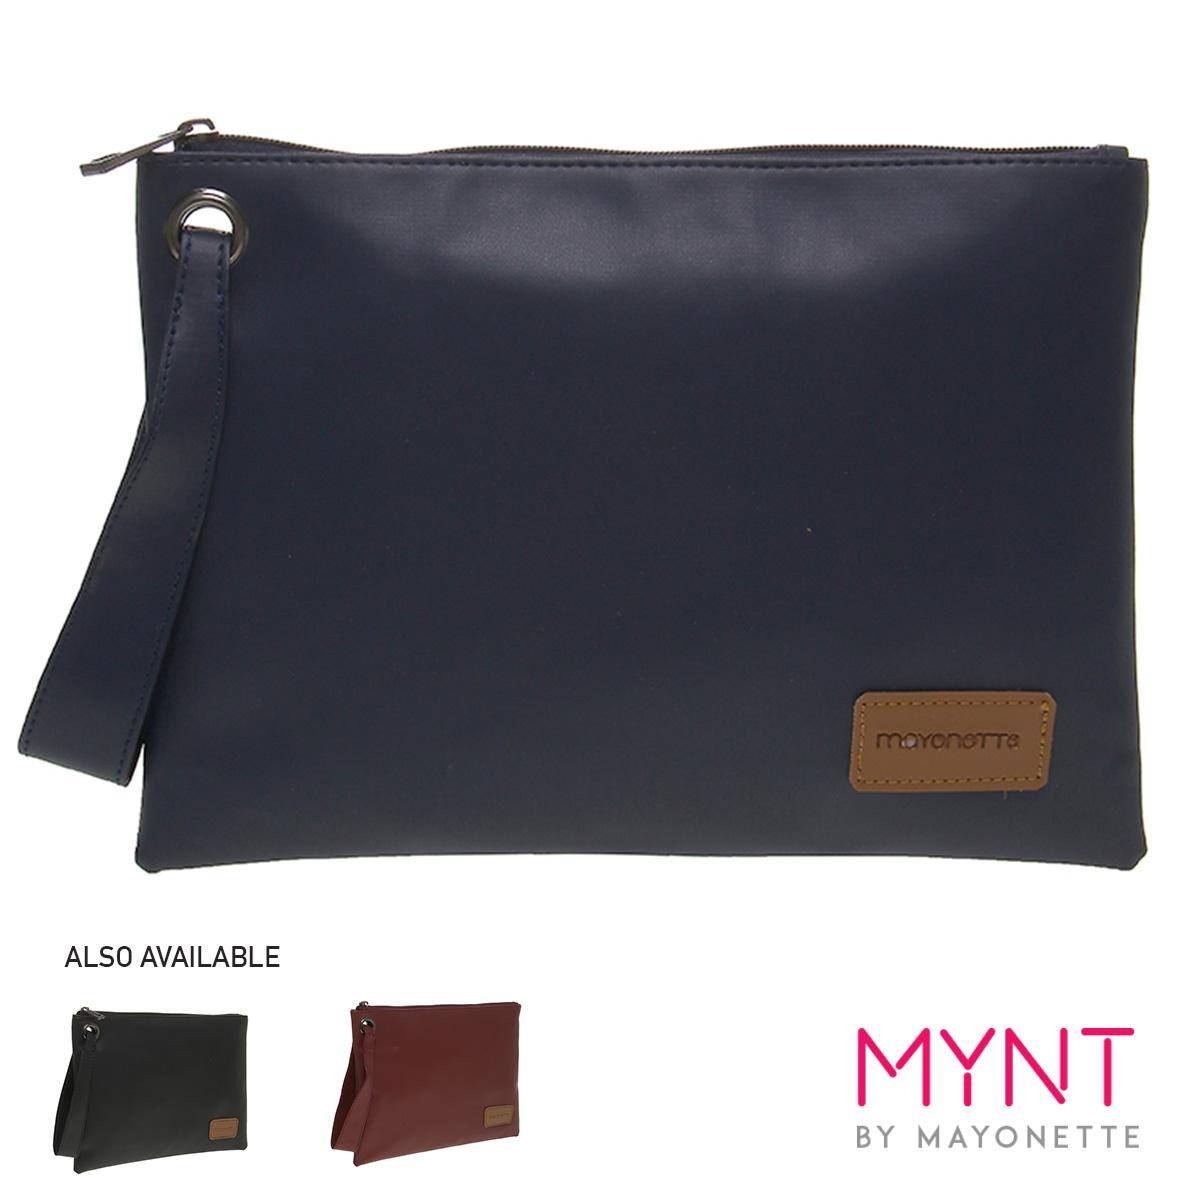 MYNT by Mayonette Dompet Korean Style Wanita & Pria Casual Simple Pouch Solla Clutch